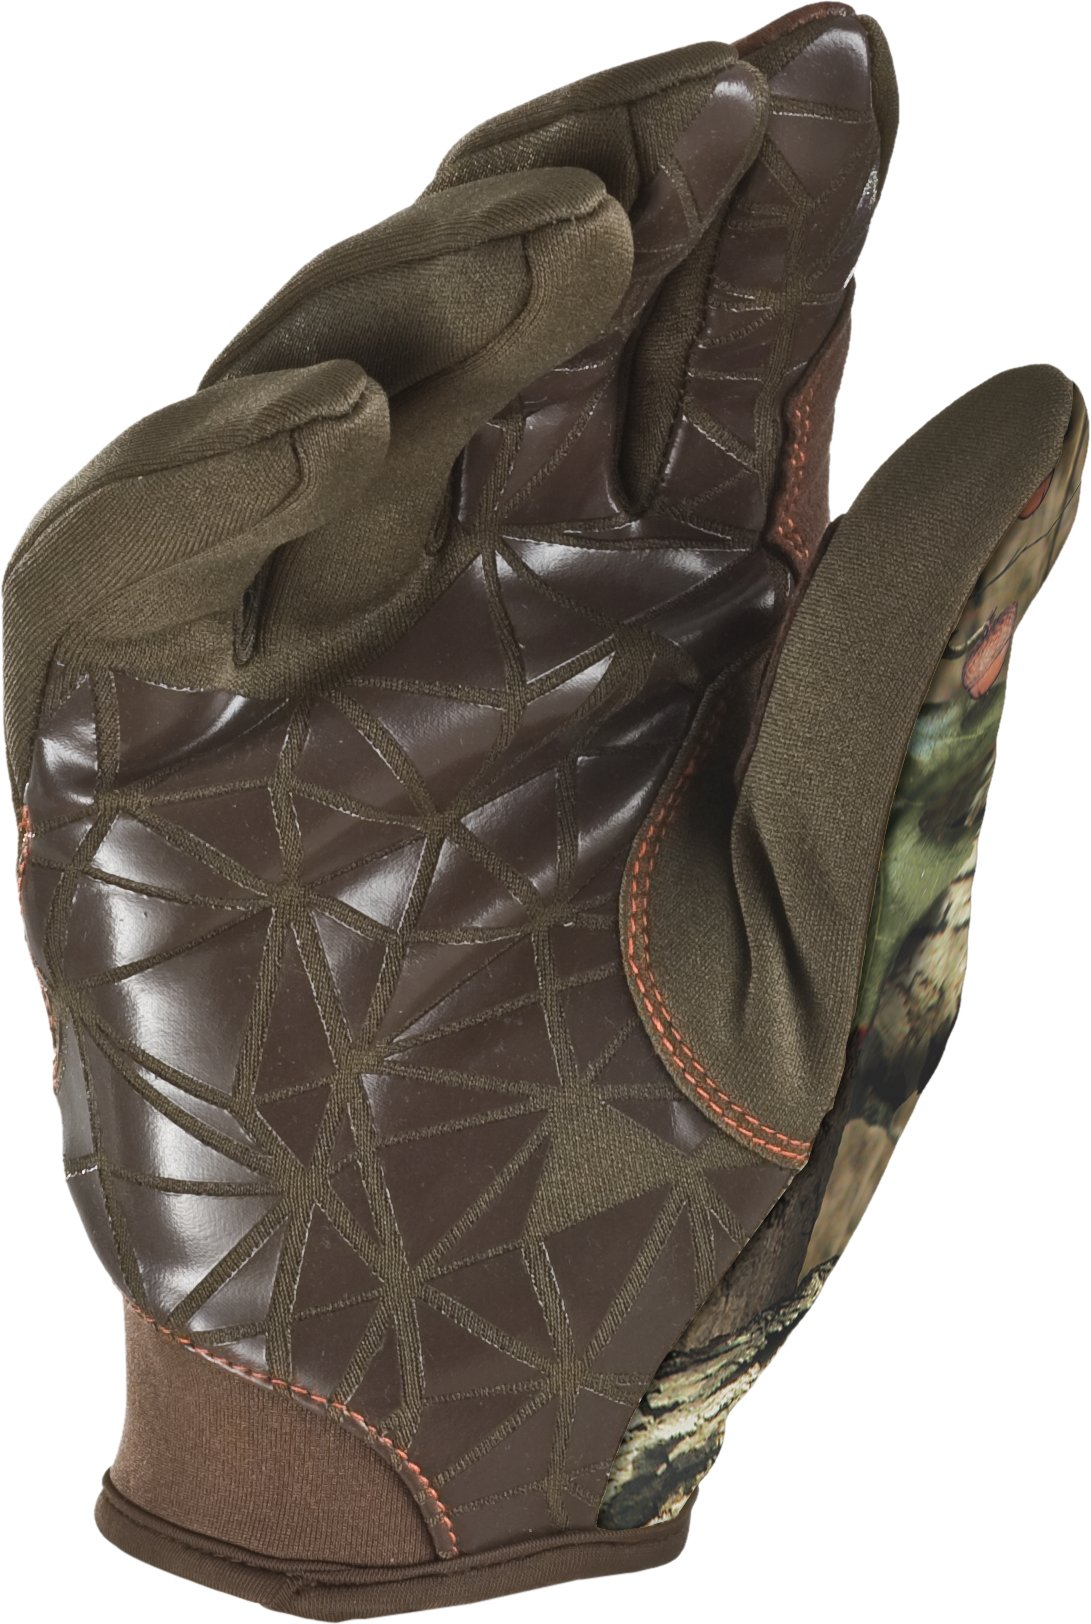 Men's Ridge Reaper® Gloves, Mossy Oak Break-Up Infinity